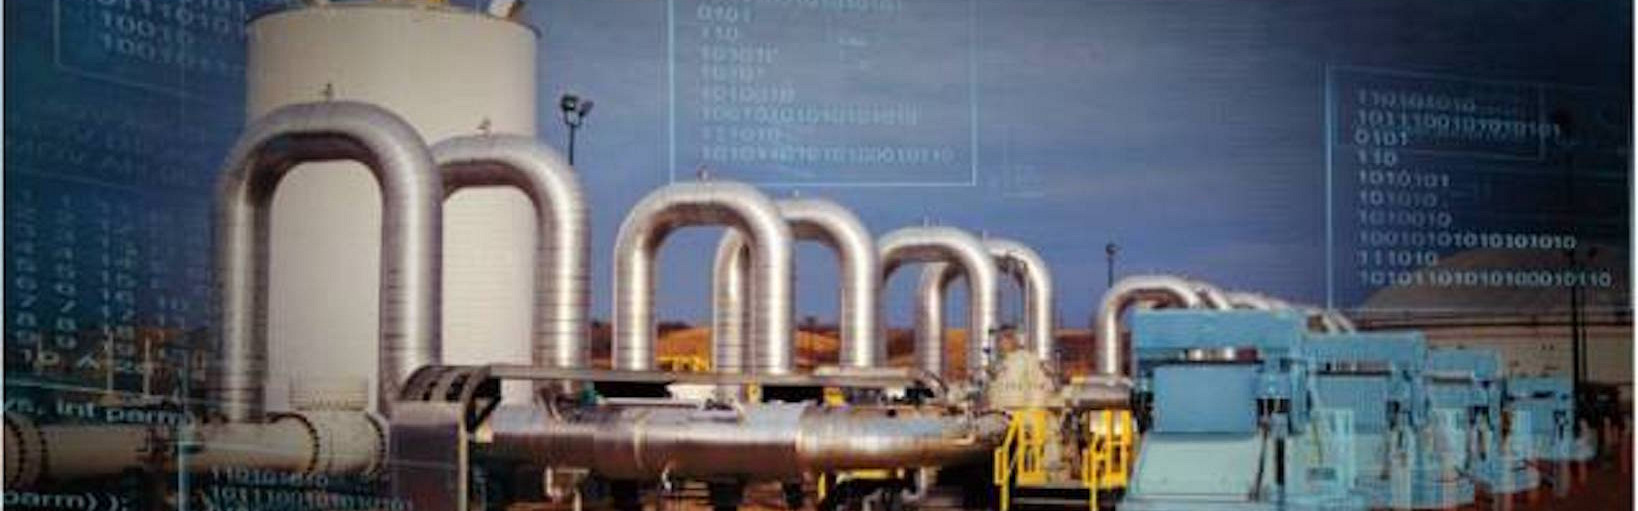 Program Working Group Digital Oil and Gas 29 June 2017